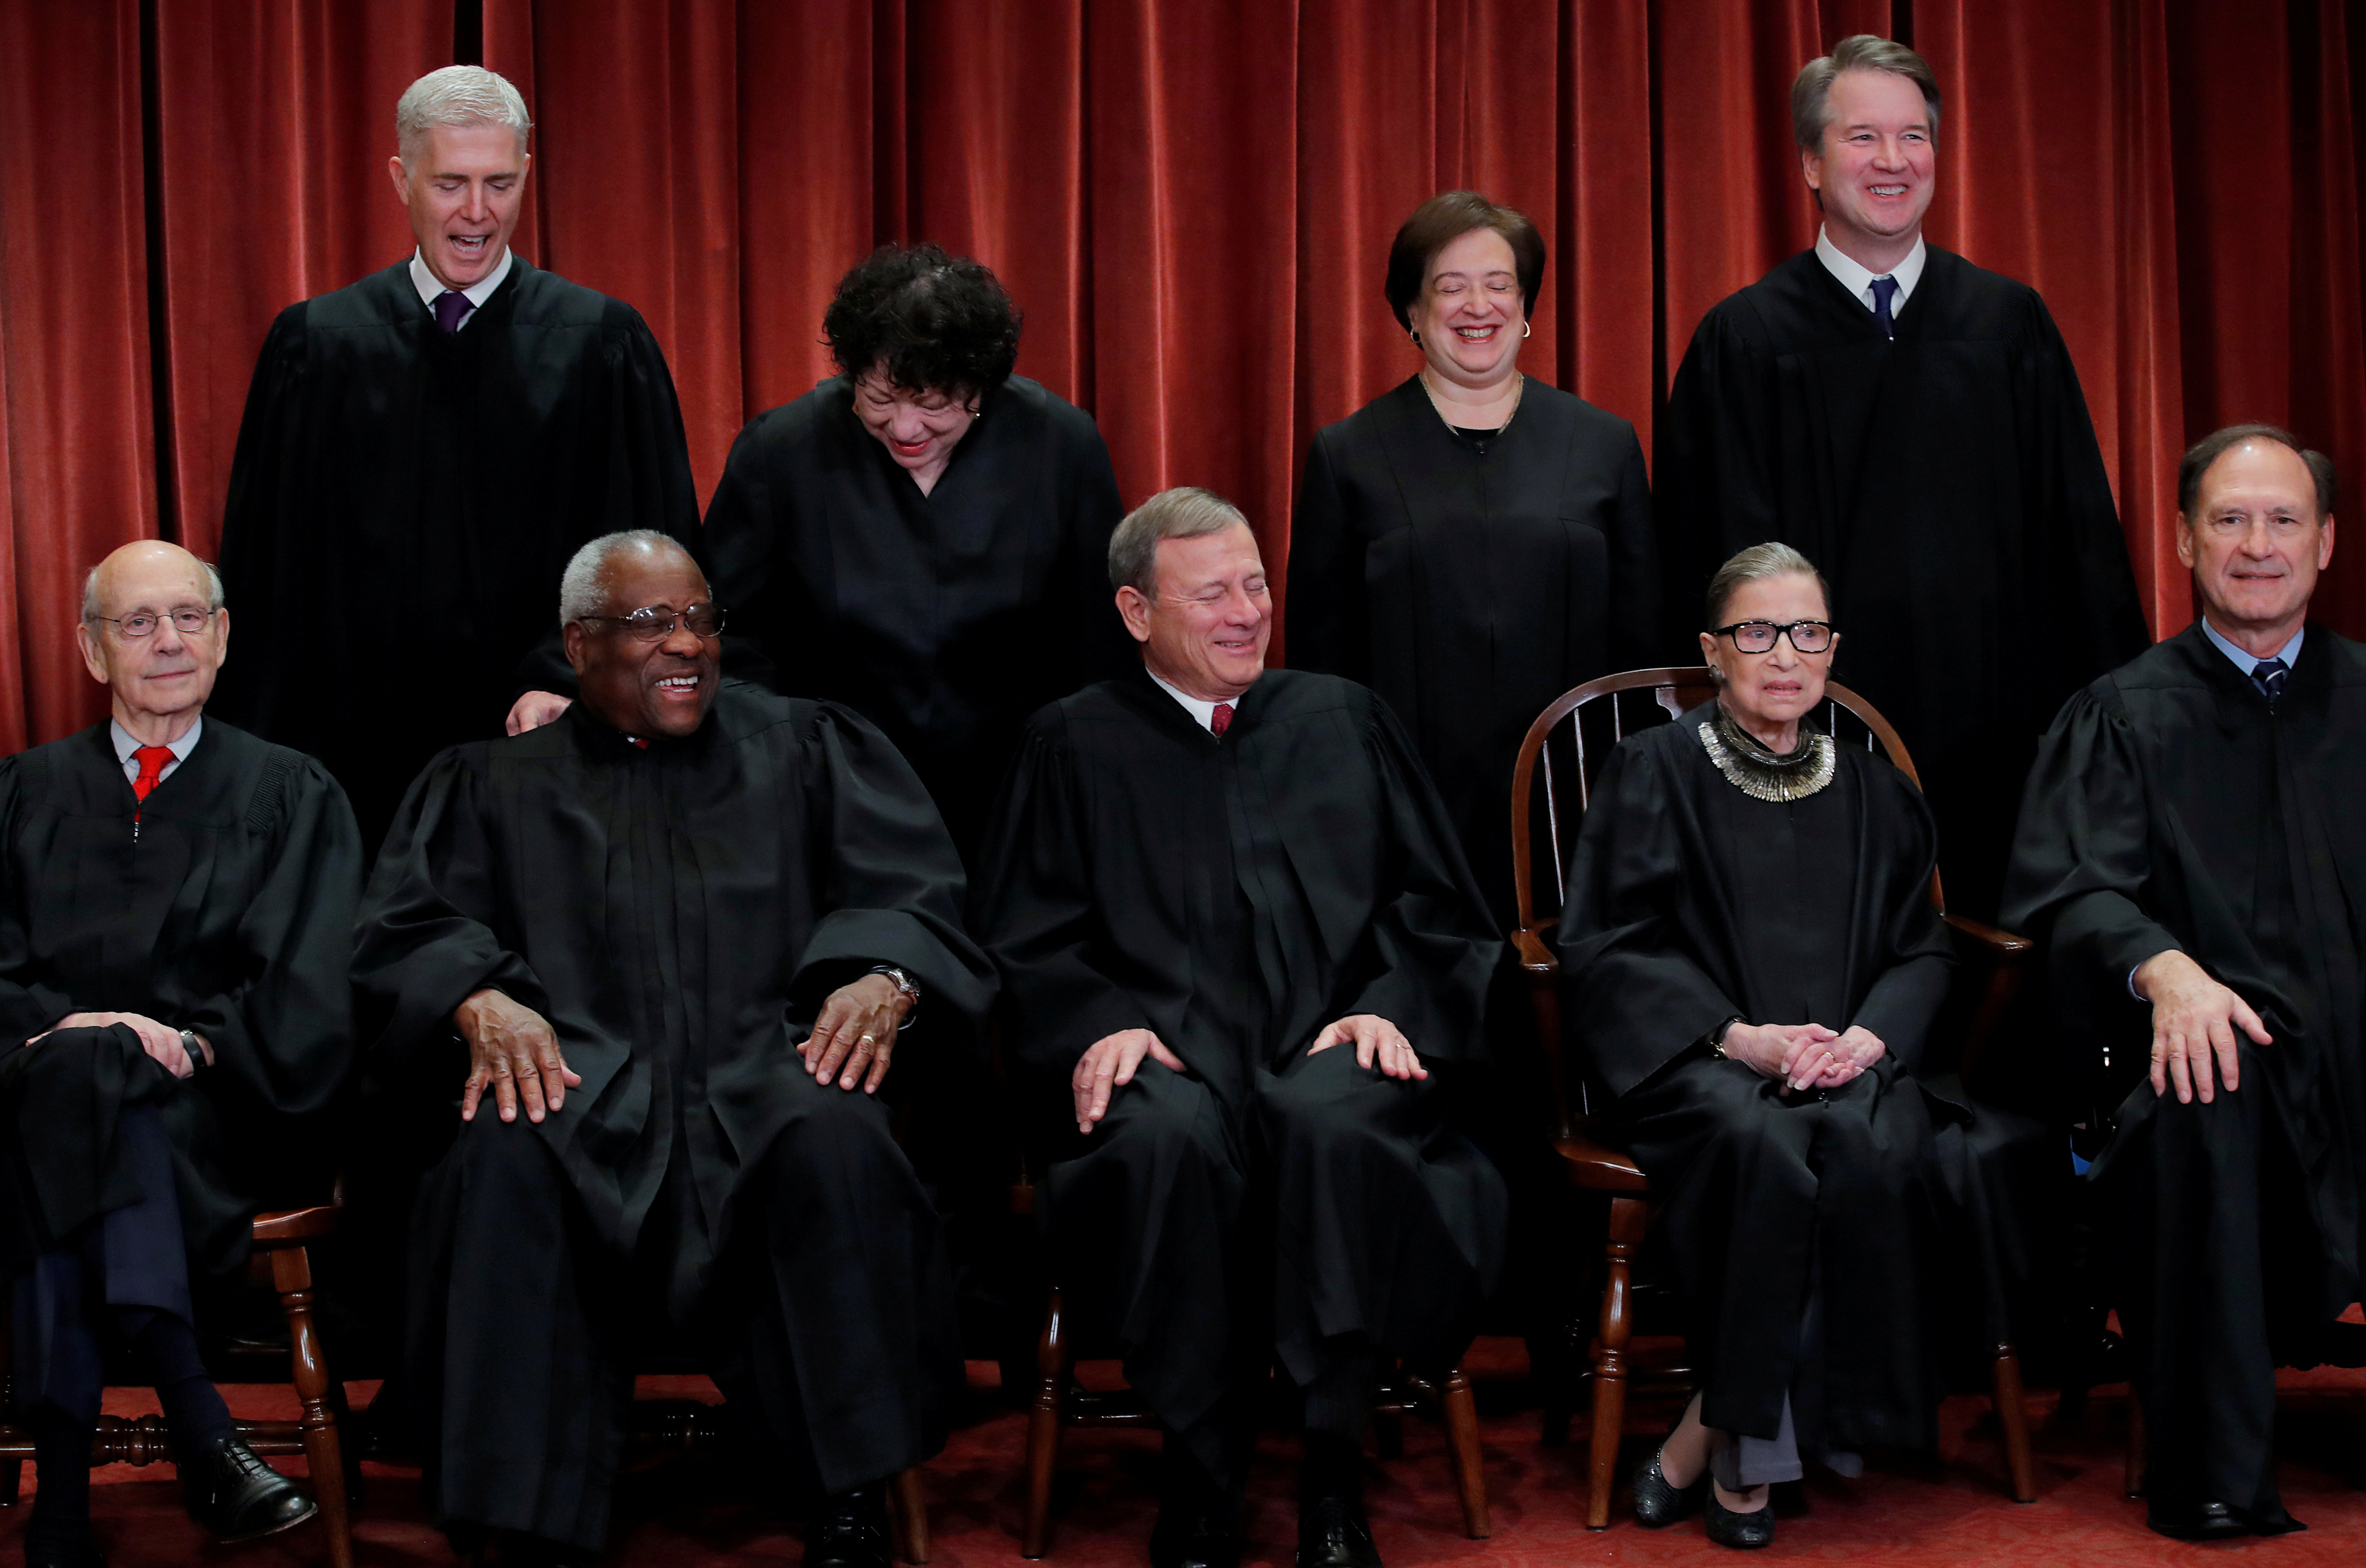 U.S. Supreme Court justices pose for group portrait at the Supreme Court in Washington